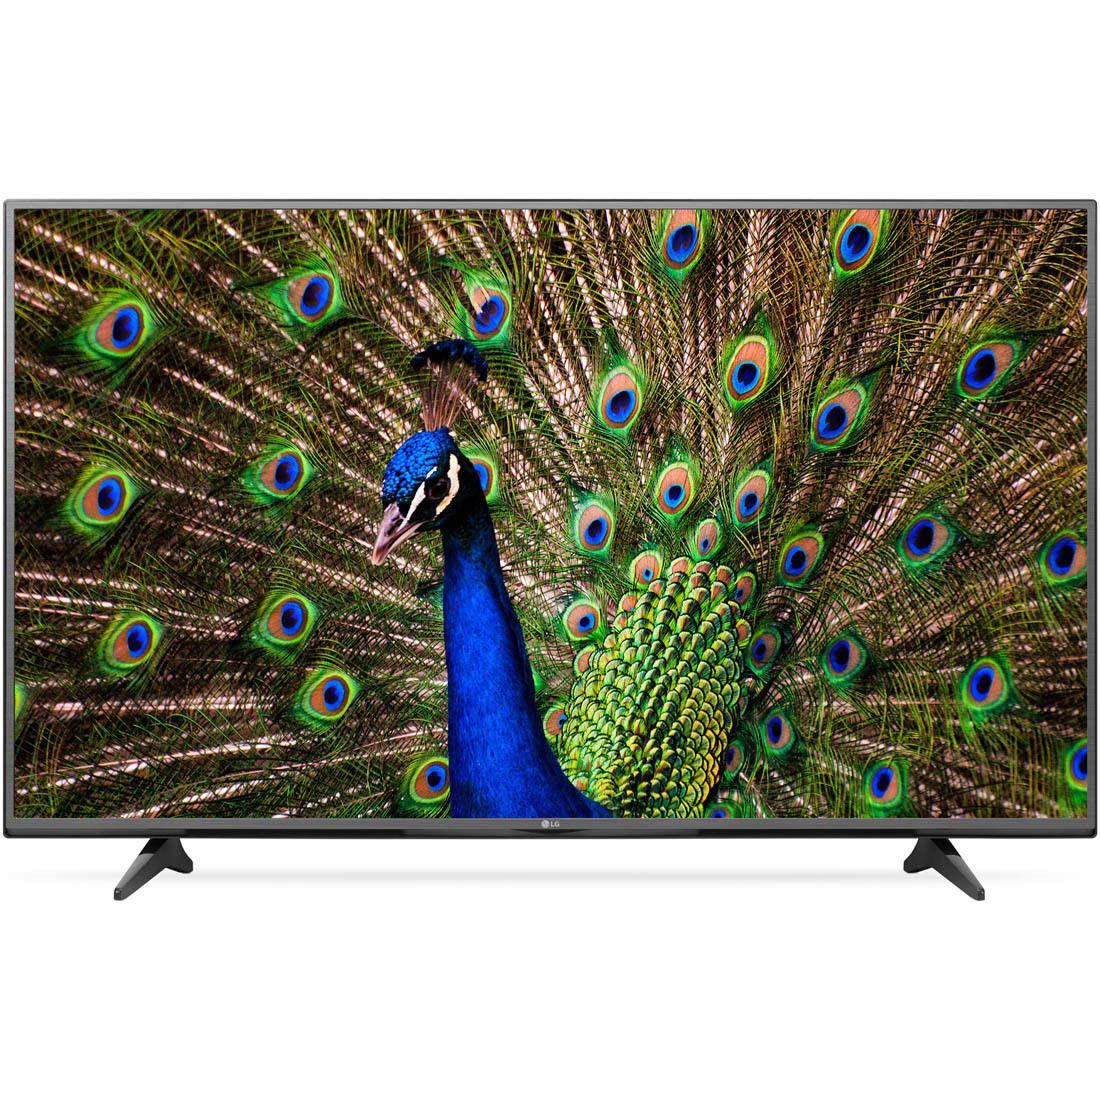 LG 49UF6400 - 49-Inch 120Hz 4K Ultra HD Smart LED TV